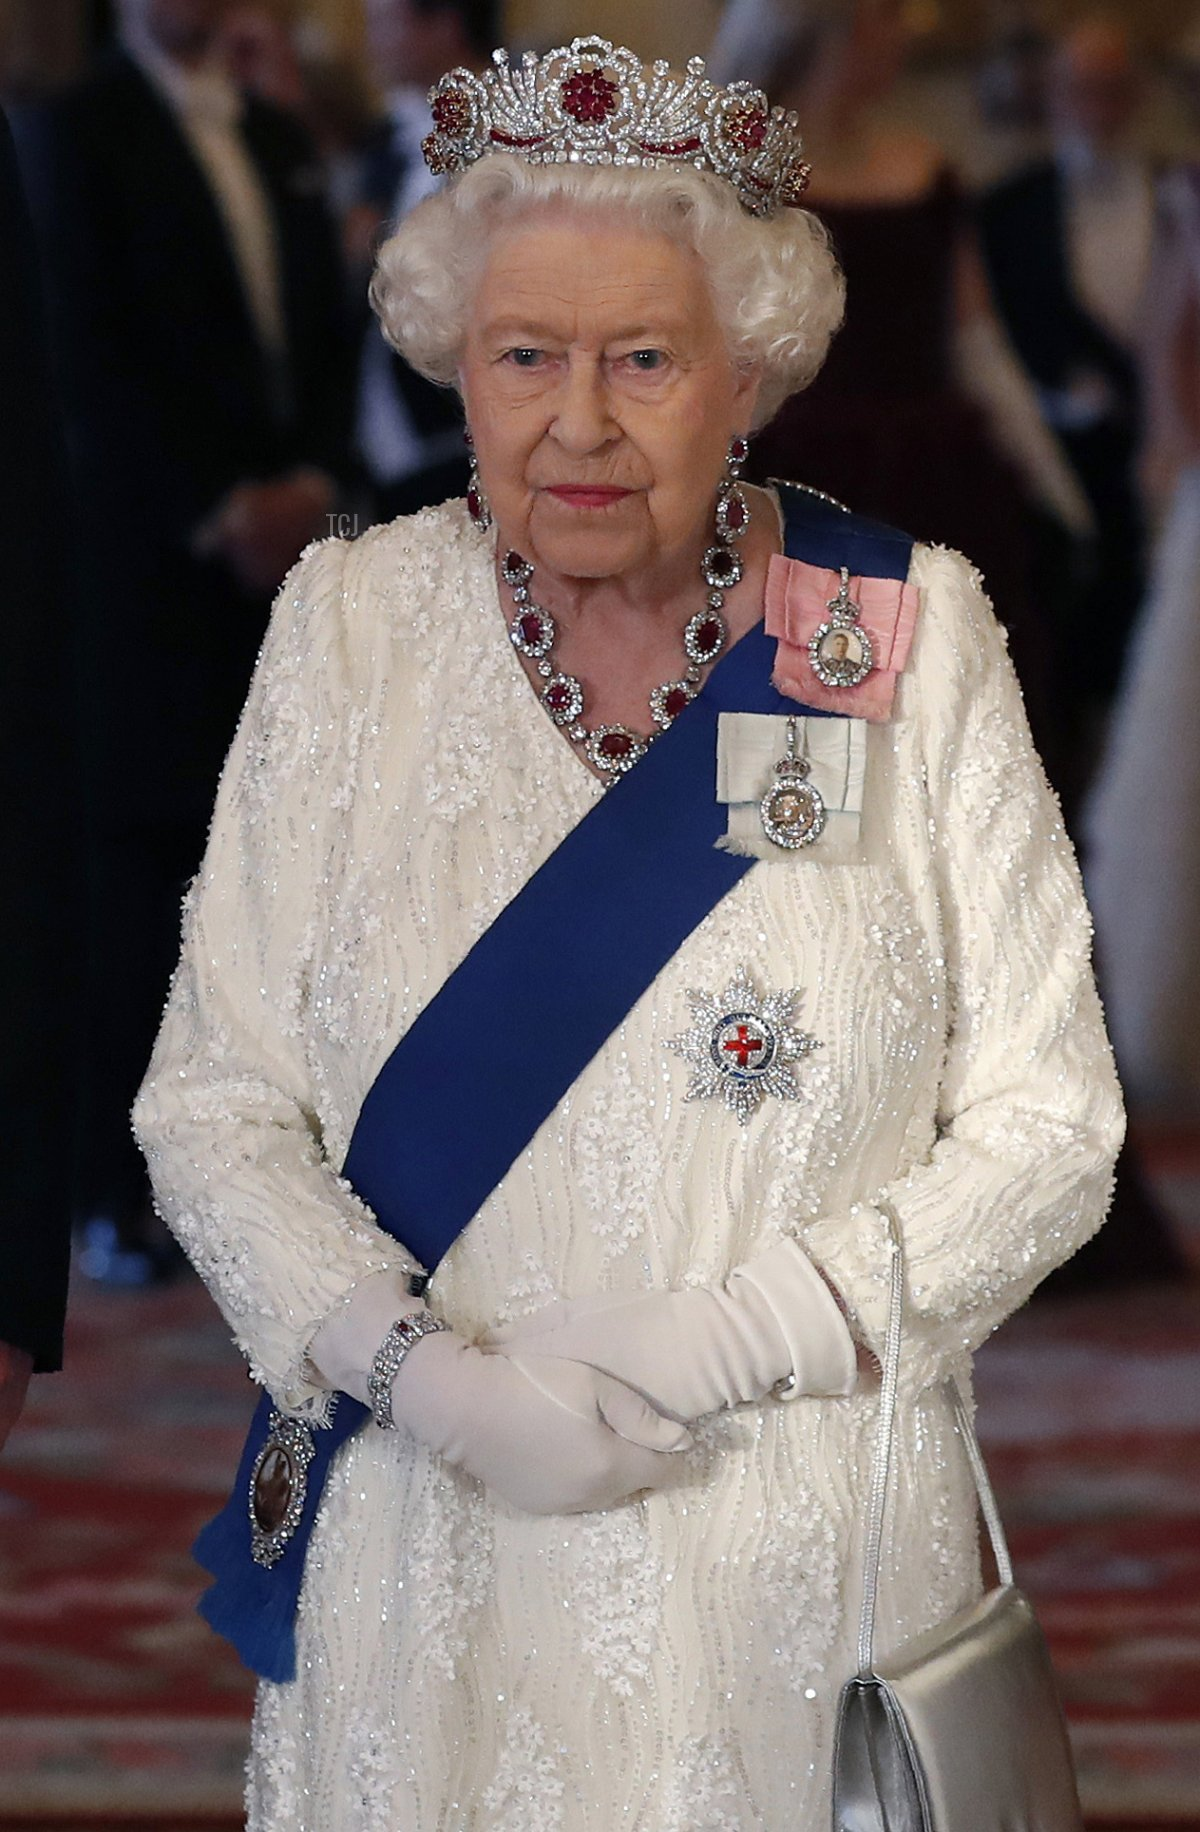 Britain's Queen Elizabeth II reacts as she poses with the US President and US First Lady ahead of a State Banquet in the ballroom at Buckingham Palace in central London on June 3, 2019, on the first day of the US president and First Lady's three-day State Visit to the UK